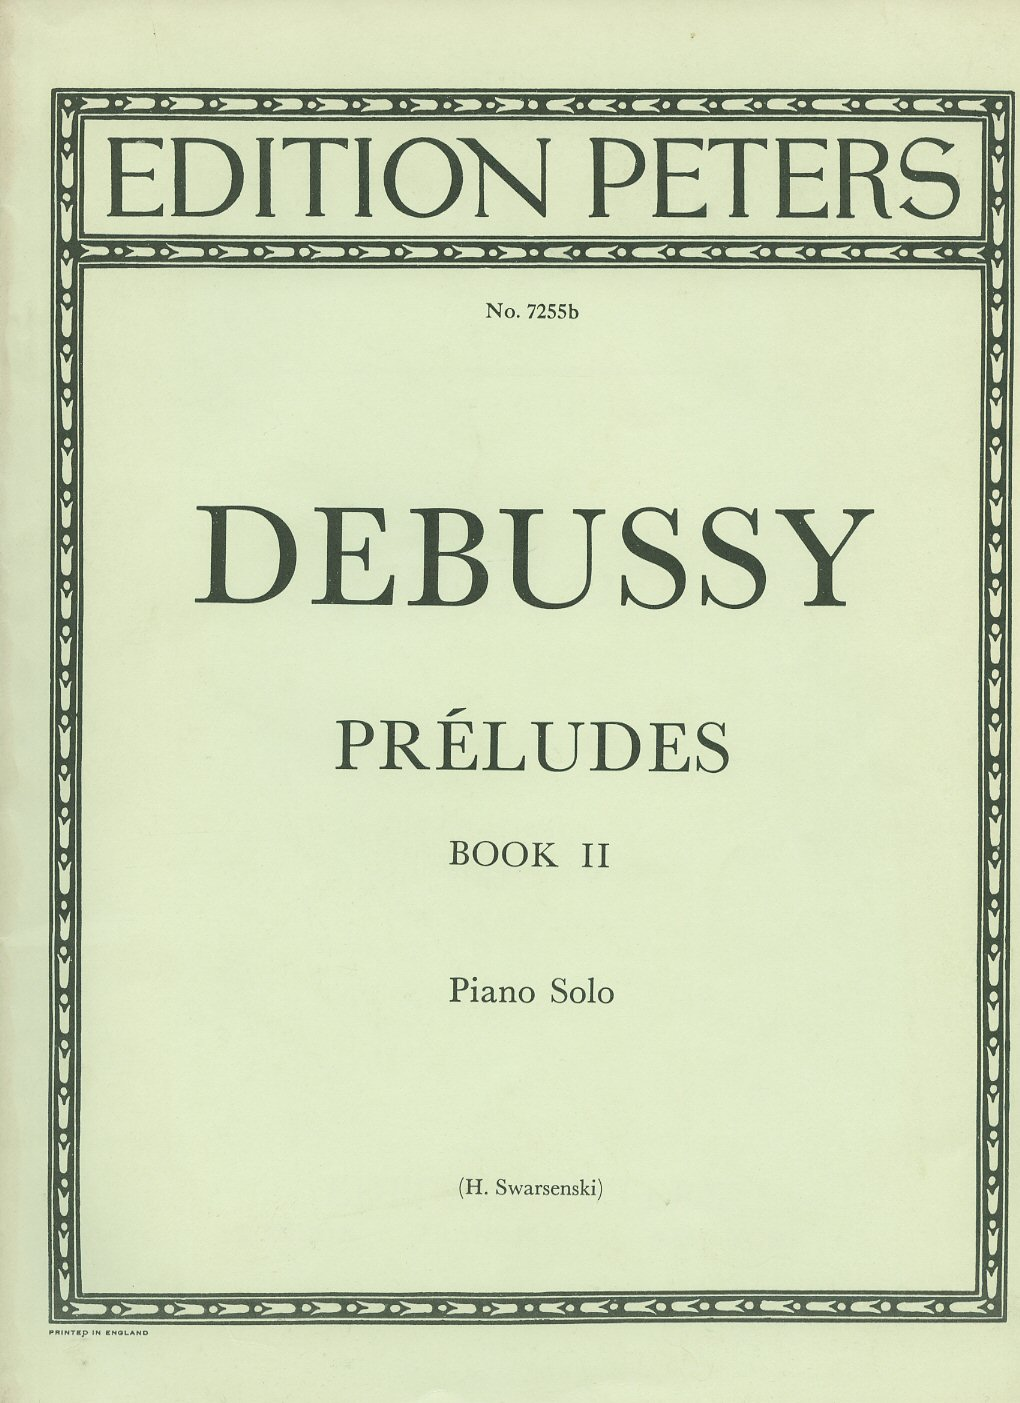 Best Debussy Works: 10 Essential Pieces By The Great Composer